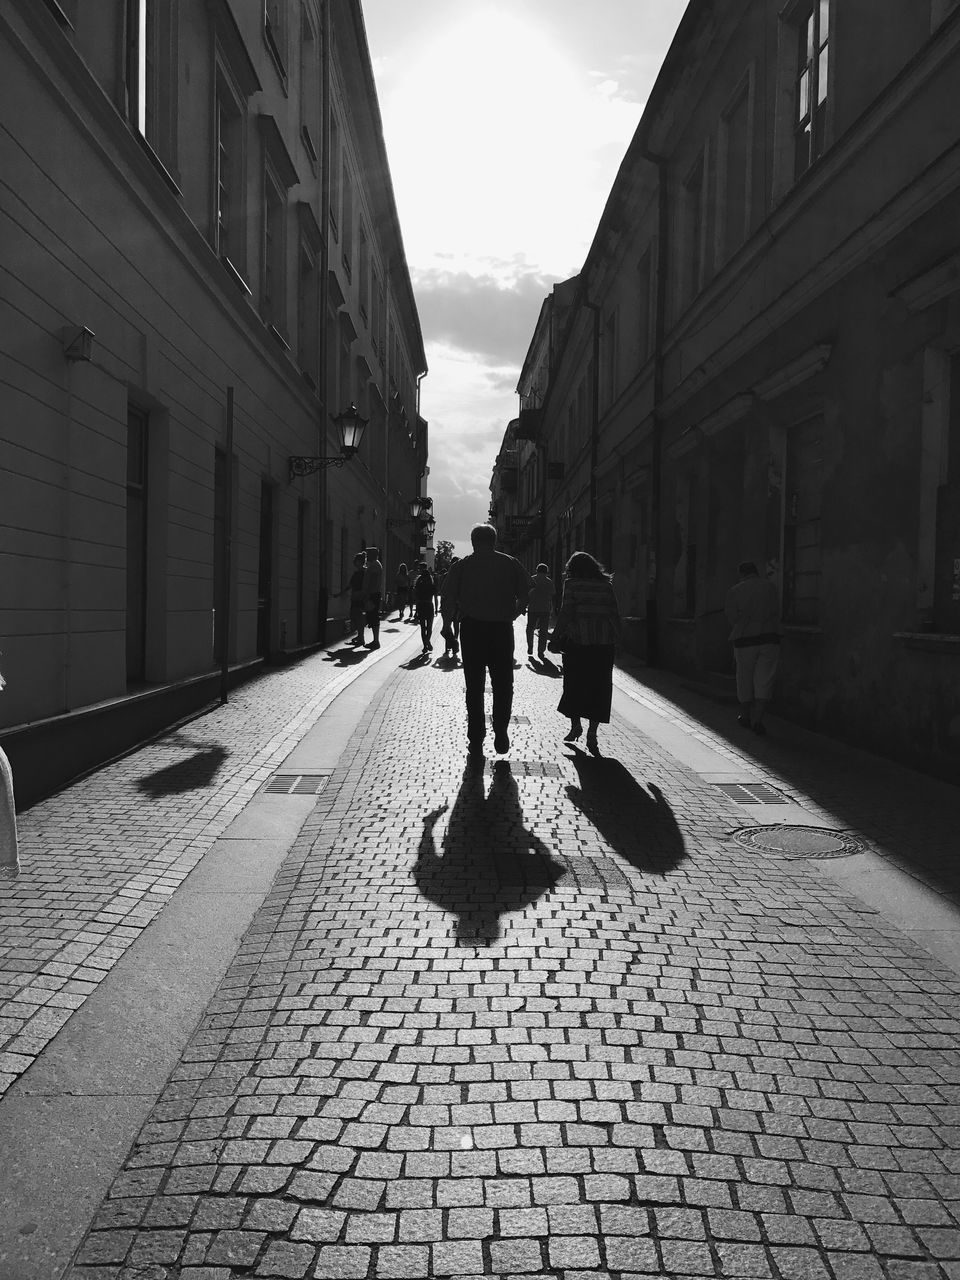 walking, architecture, building exterior, full length, built structure, street, real people, city, shadow, sunlight, outdoors, two people, men, day, women, friendship, sky, people, adult